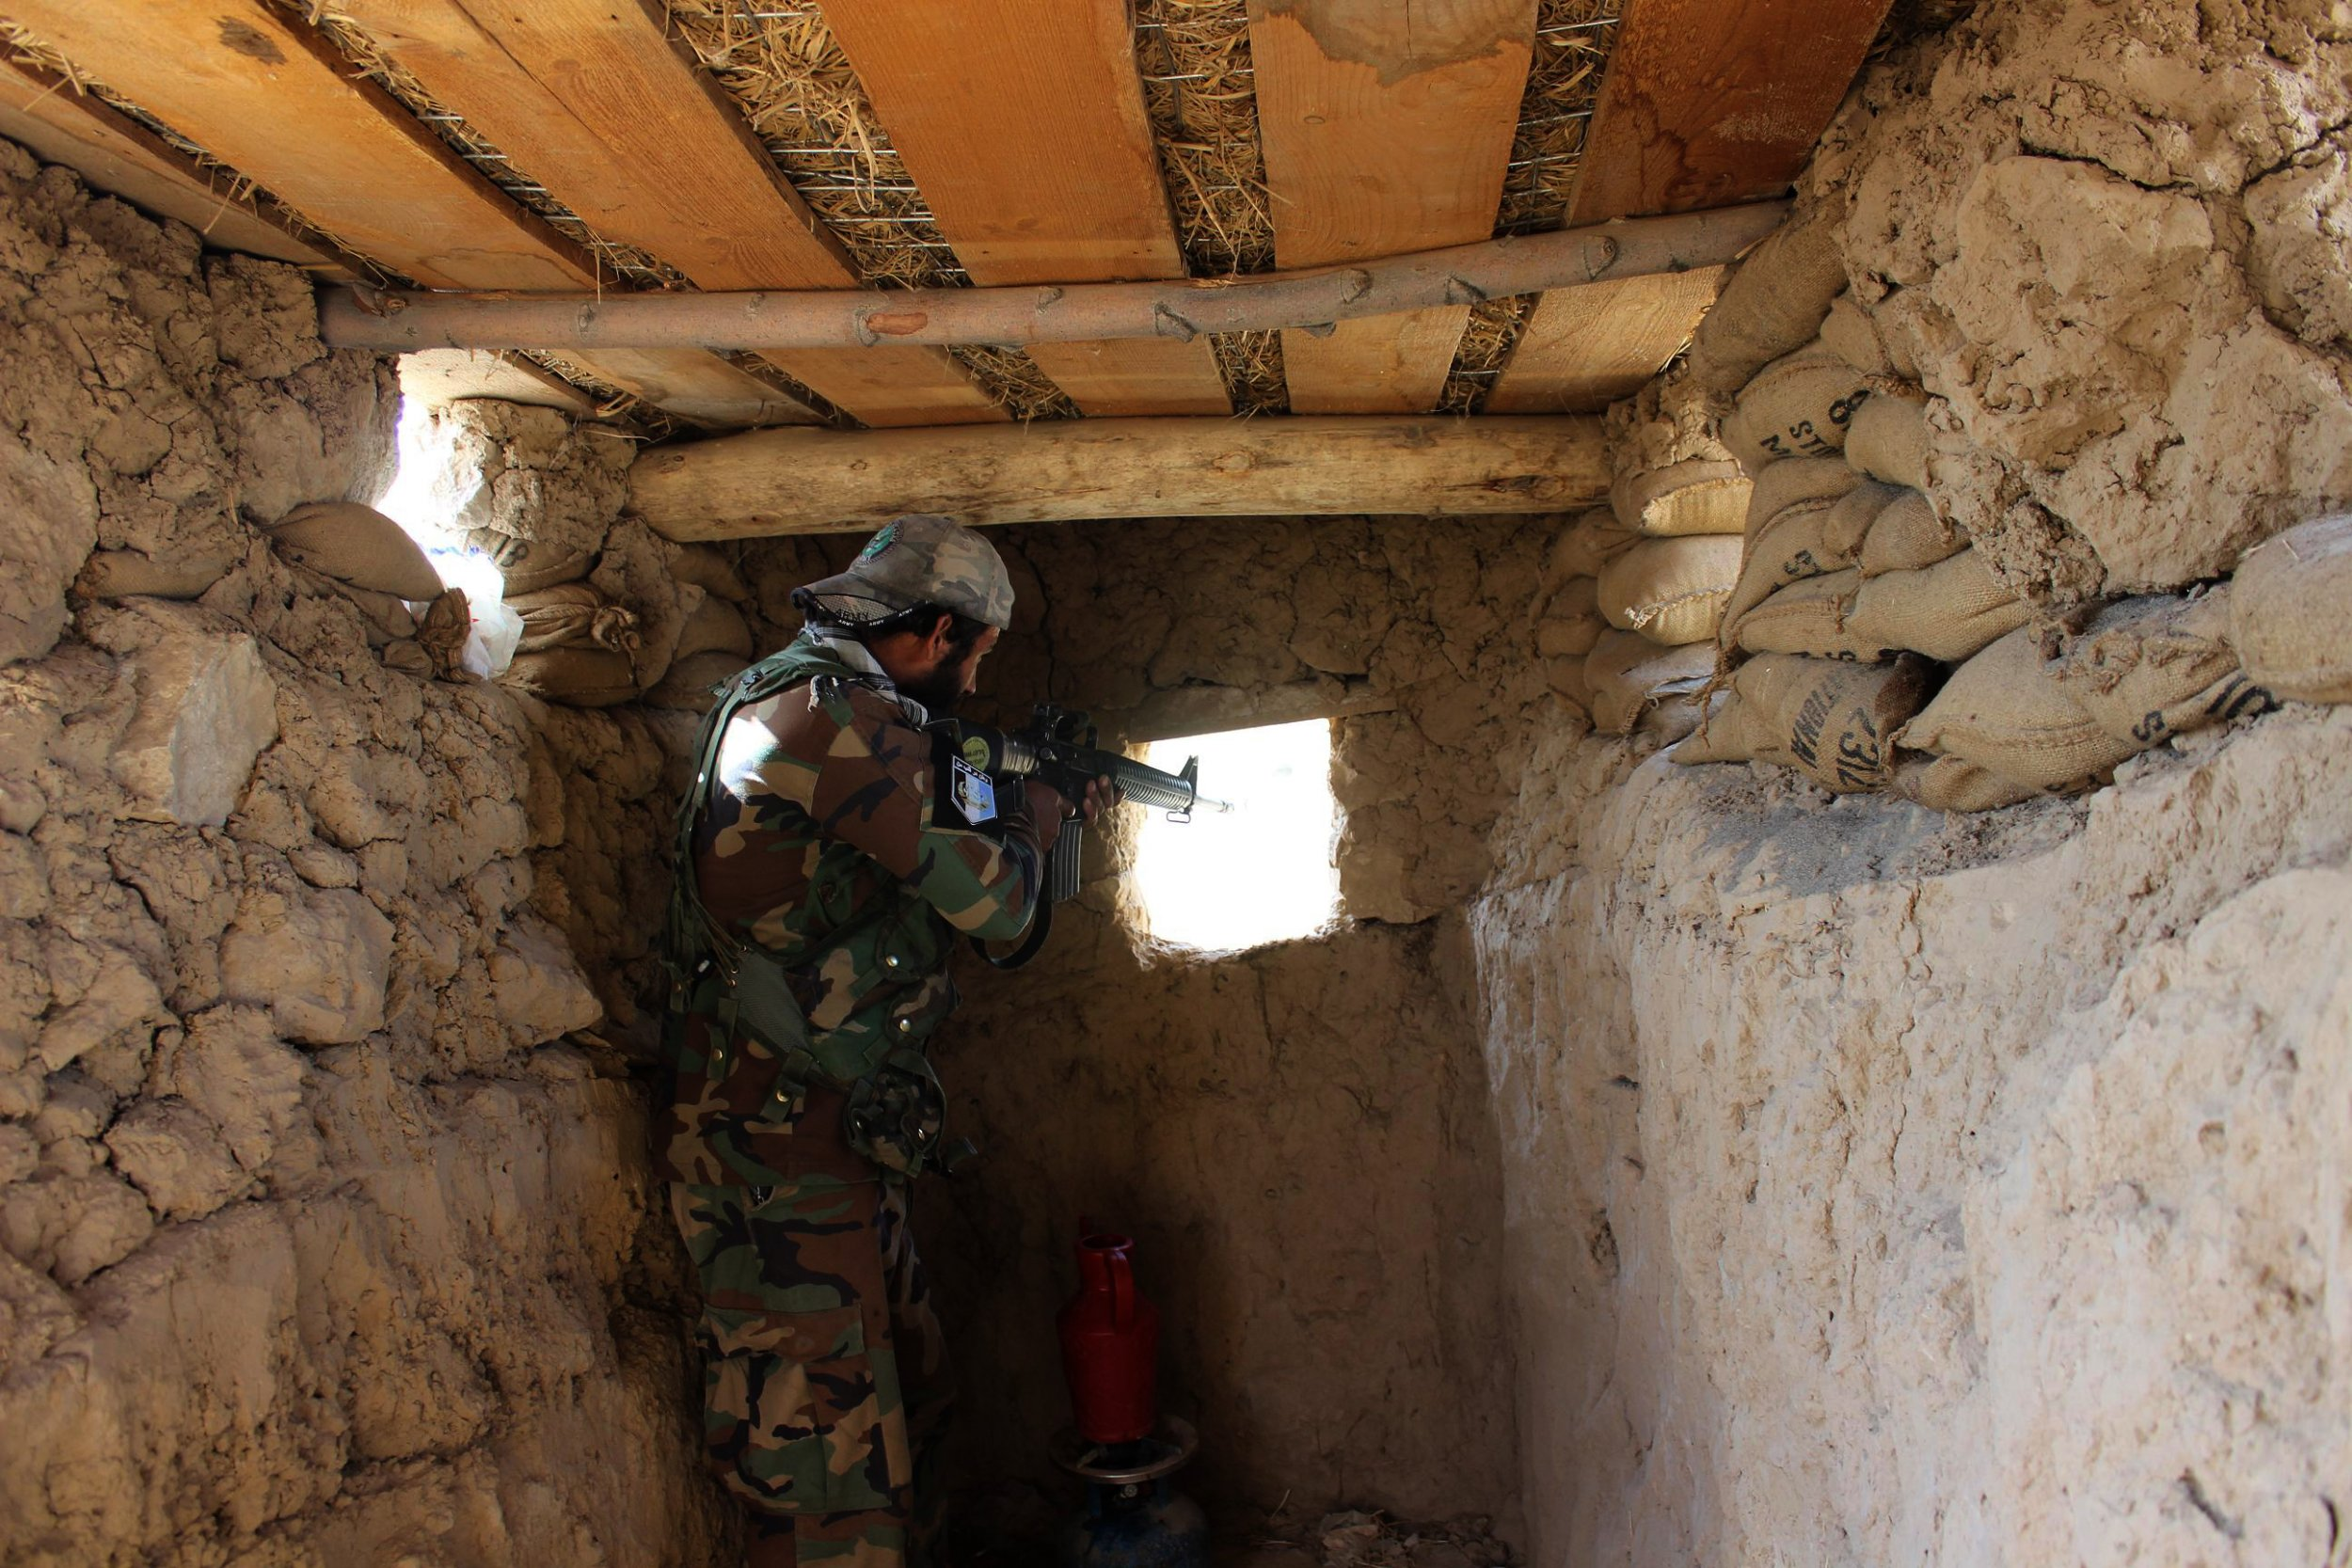 Afghanistan Forces tackle Taliban